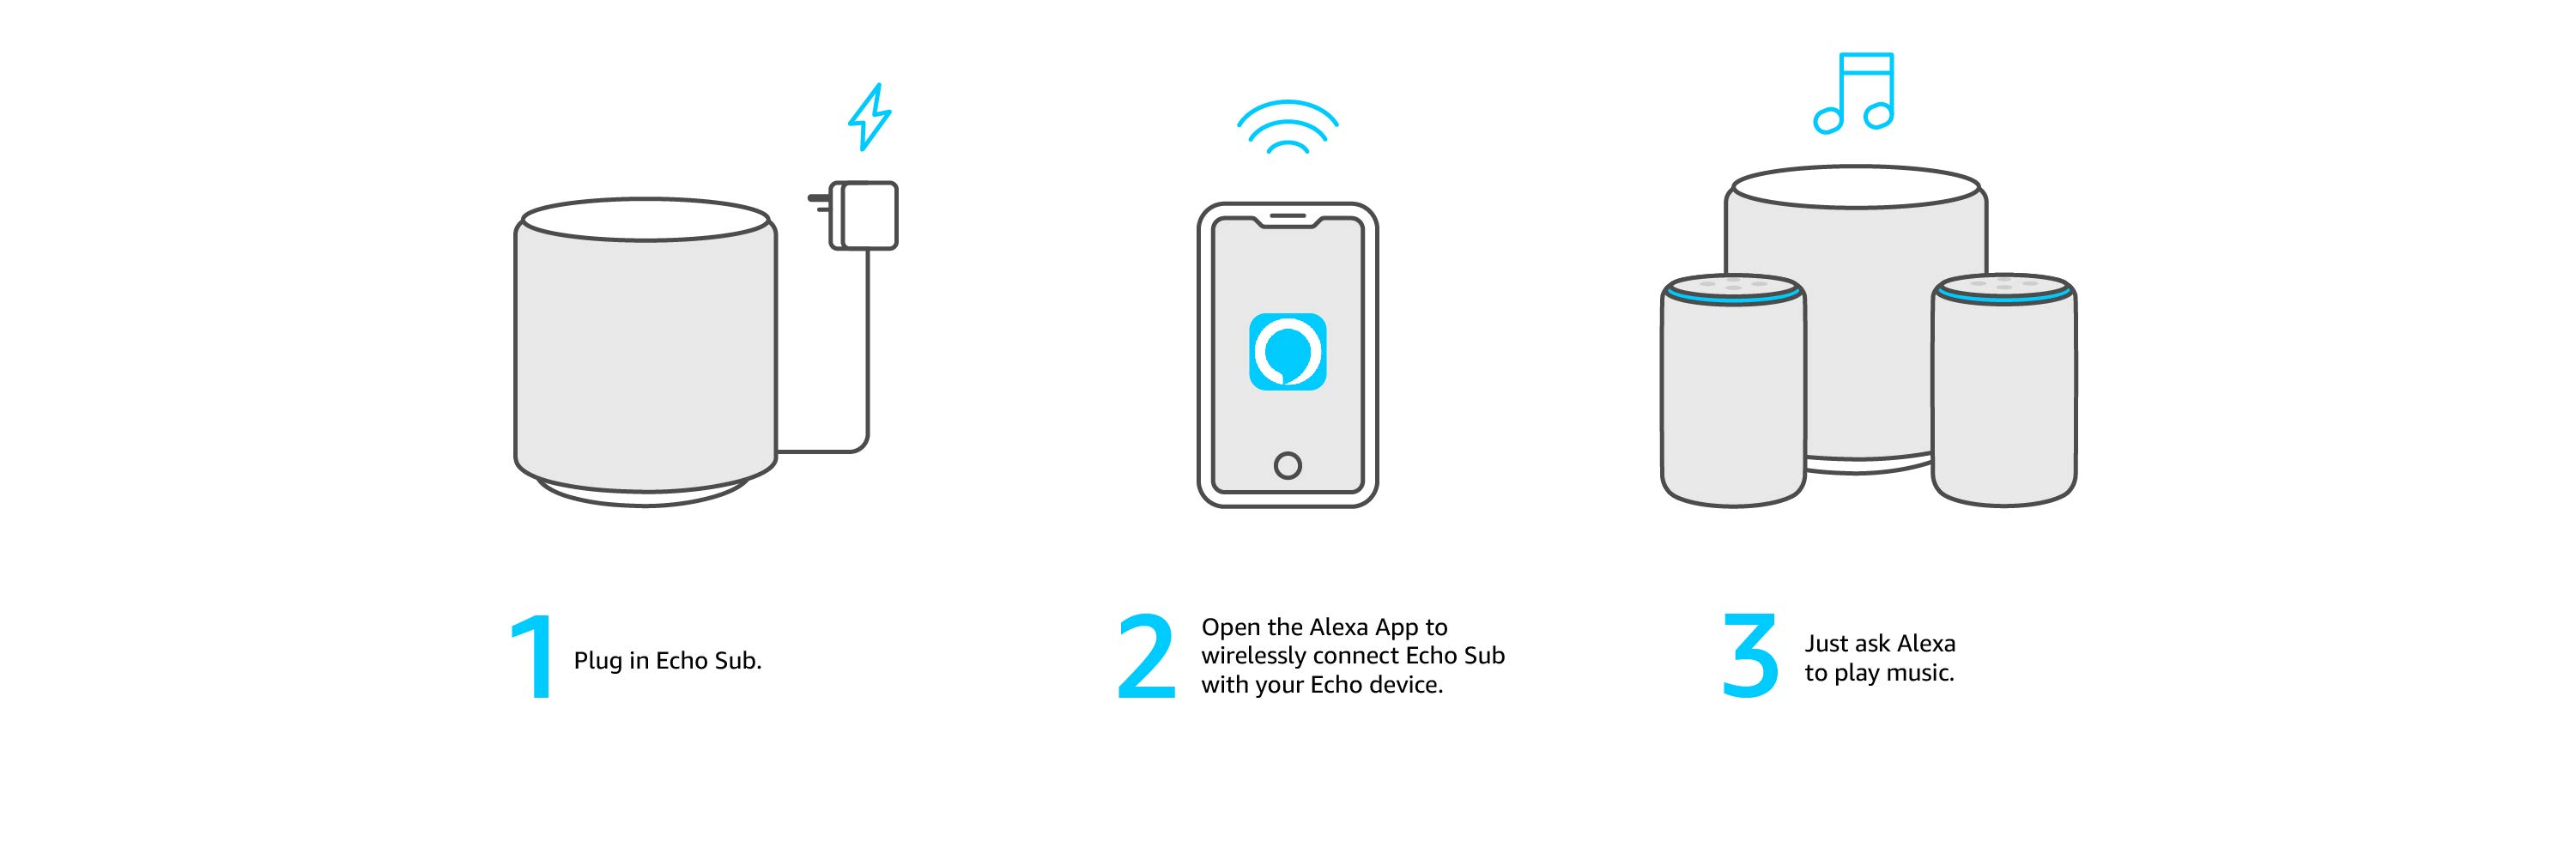 1. Plug in Echo Sub| 2. Open the Alexa app to wirelessly connect Echo Sub to your Echo device. | 3. Just ask Alexa to play music.